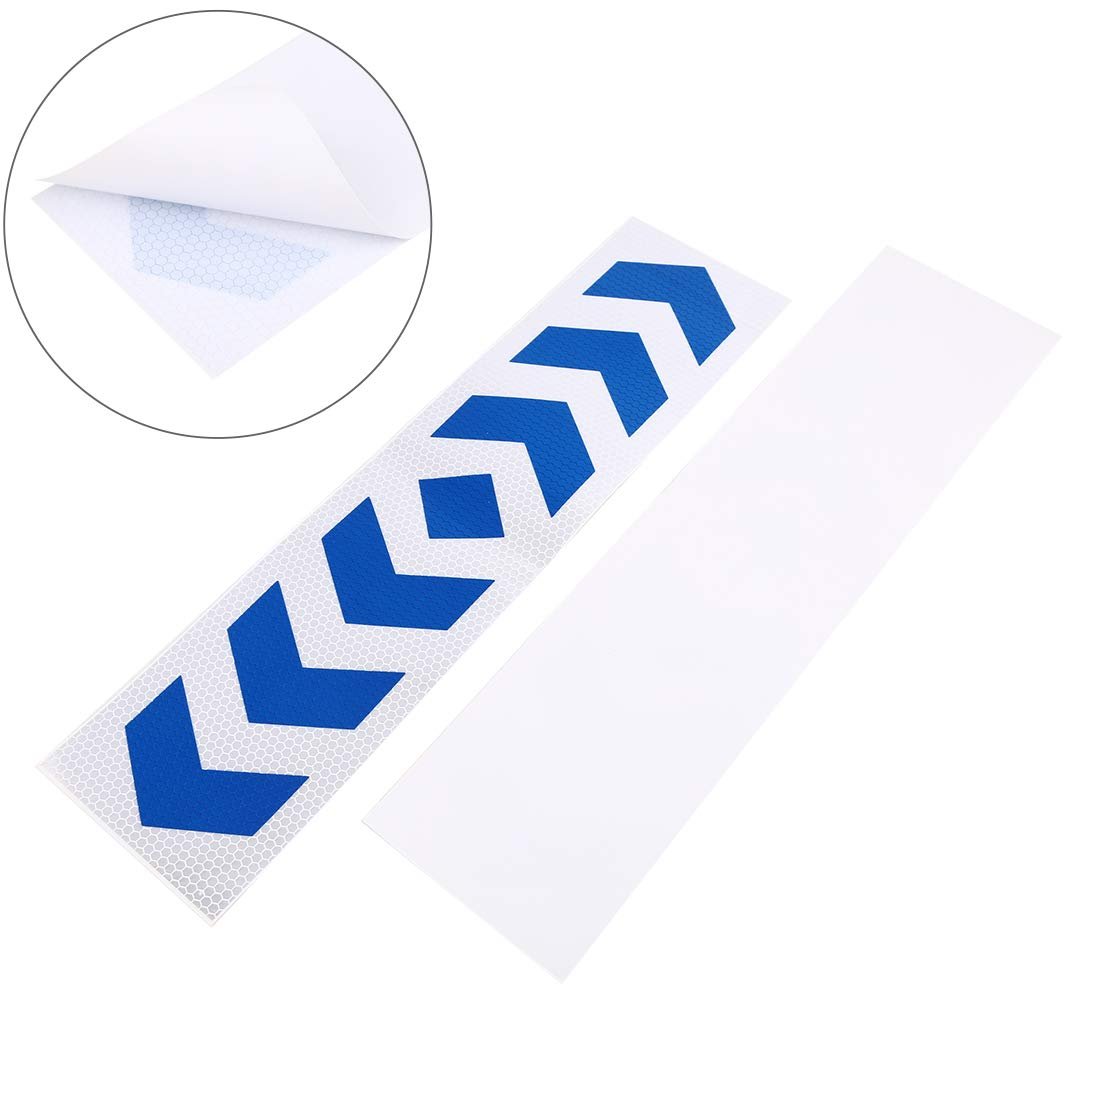 X AUTOHAUX 10pcs Automotive Reflective Stickers Night Visibility Reflective Tape Universal Adhesive 40 x 10cm Silver Tone Blue Arrows Pattern